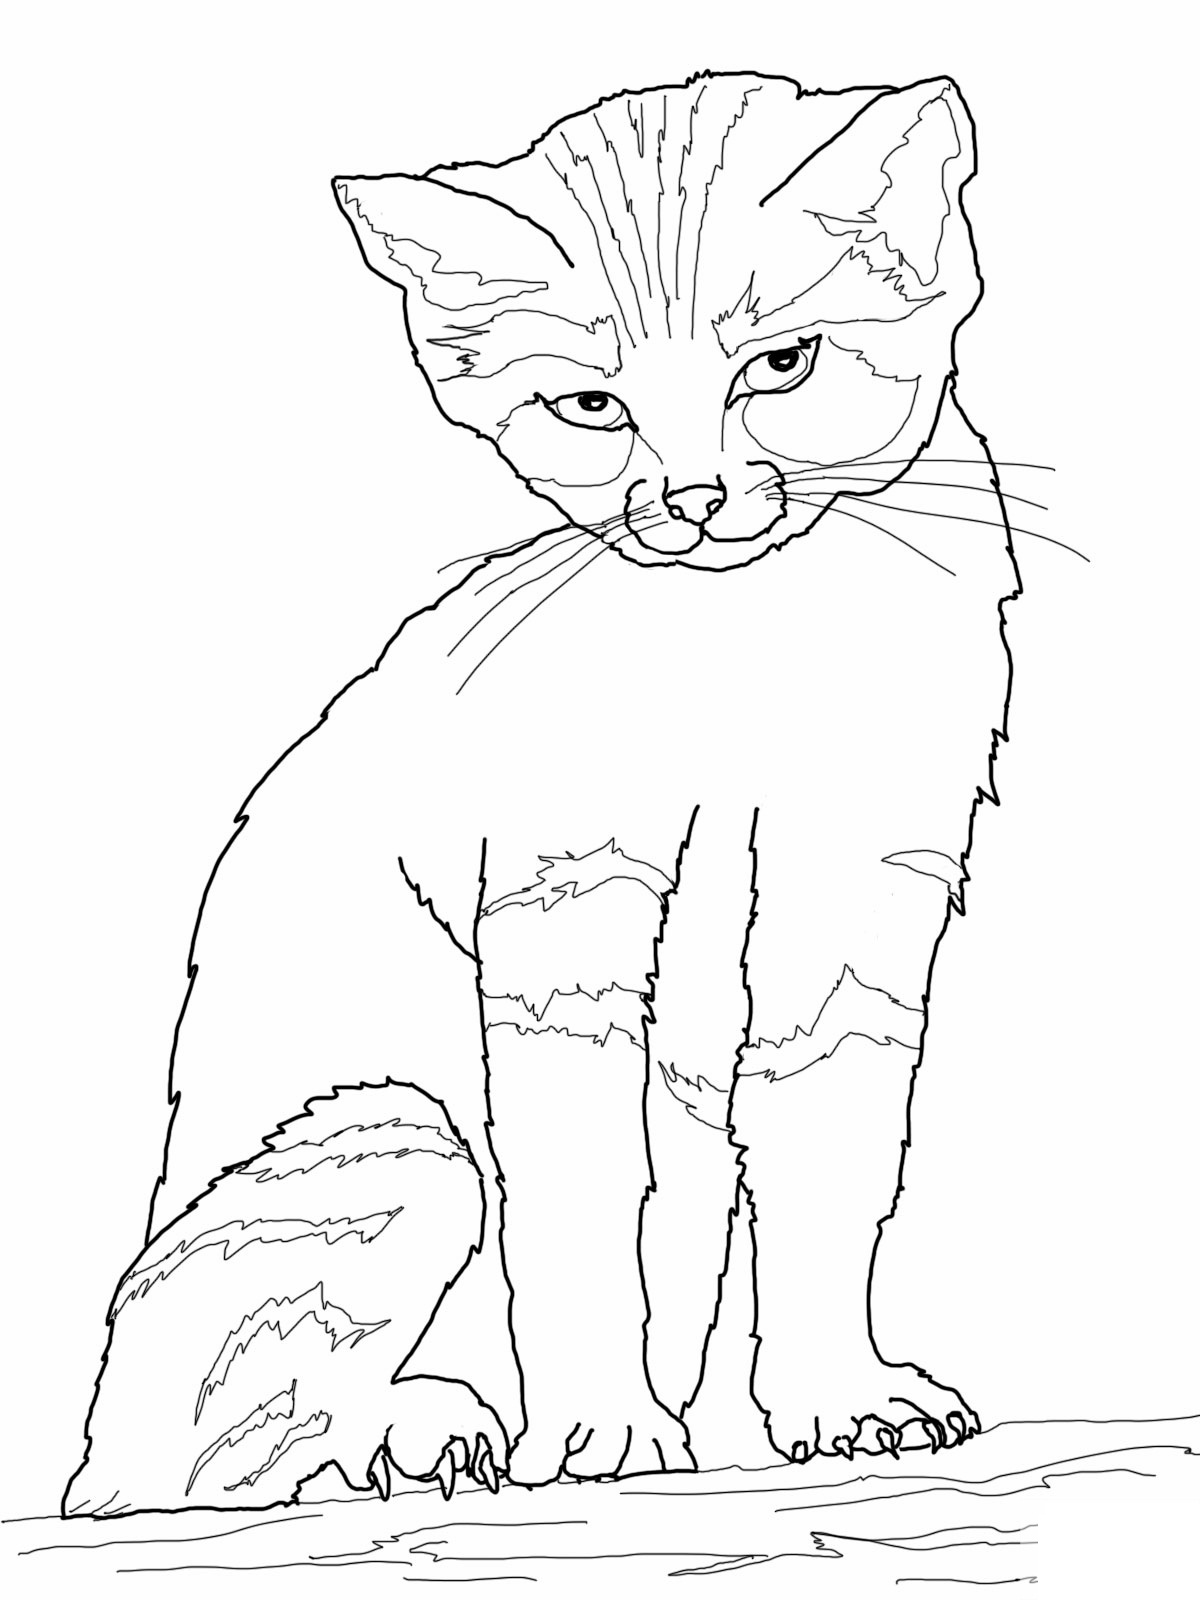 Cat Drawing Online at GetDrawings.com | Free for personal use Cat ...